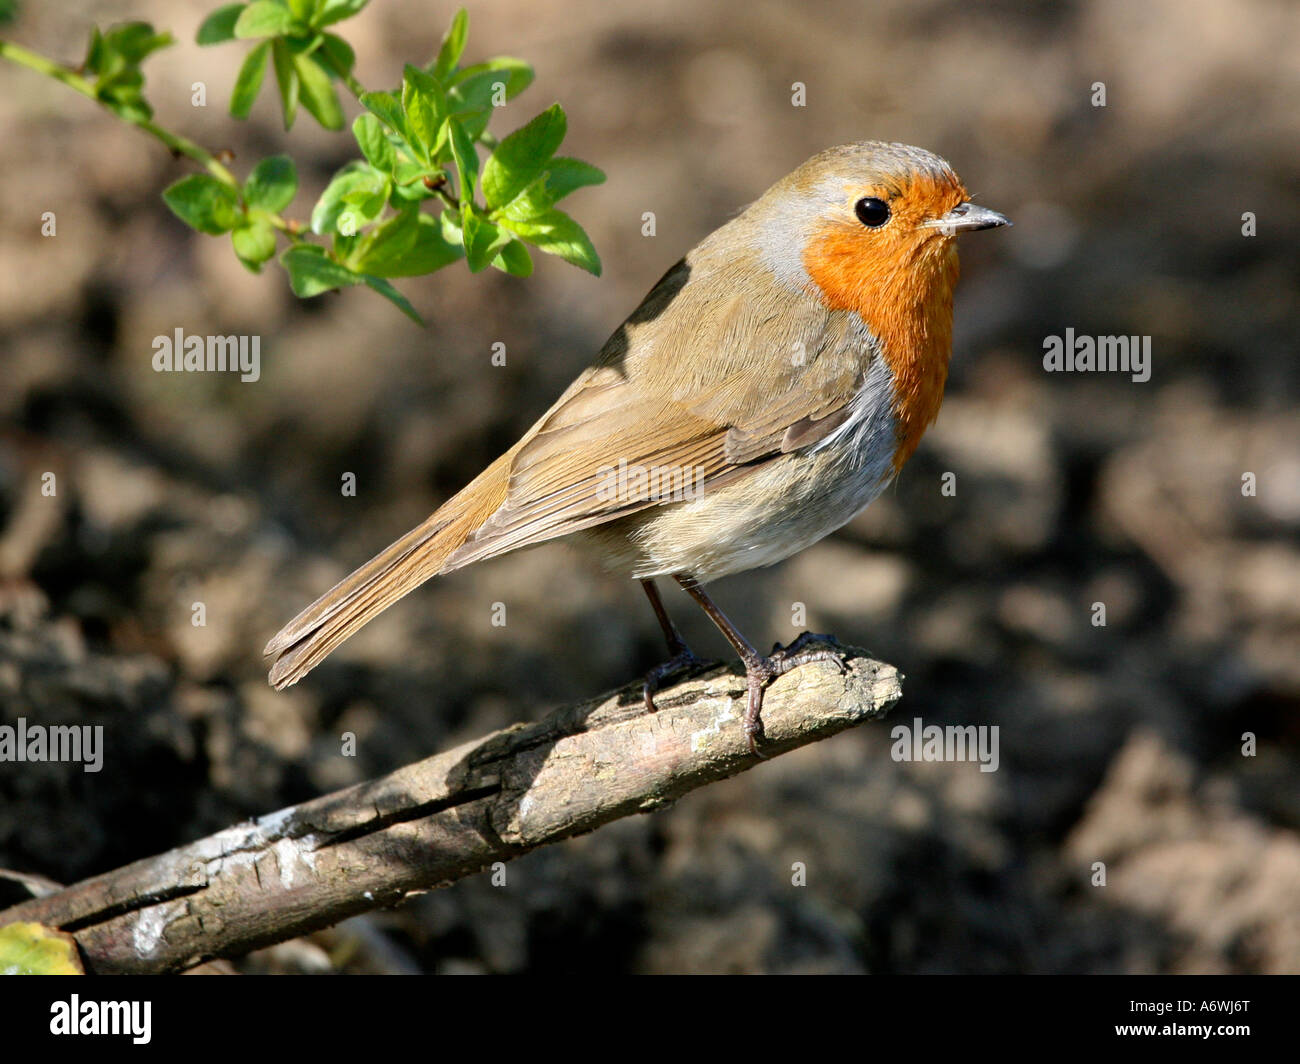 A robin sitting on a branch, in a garden. - Stock Image